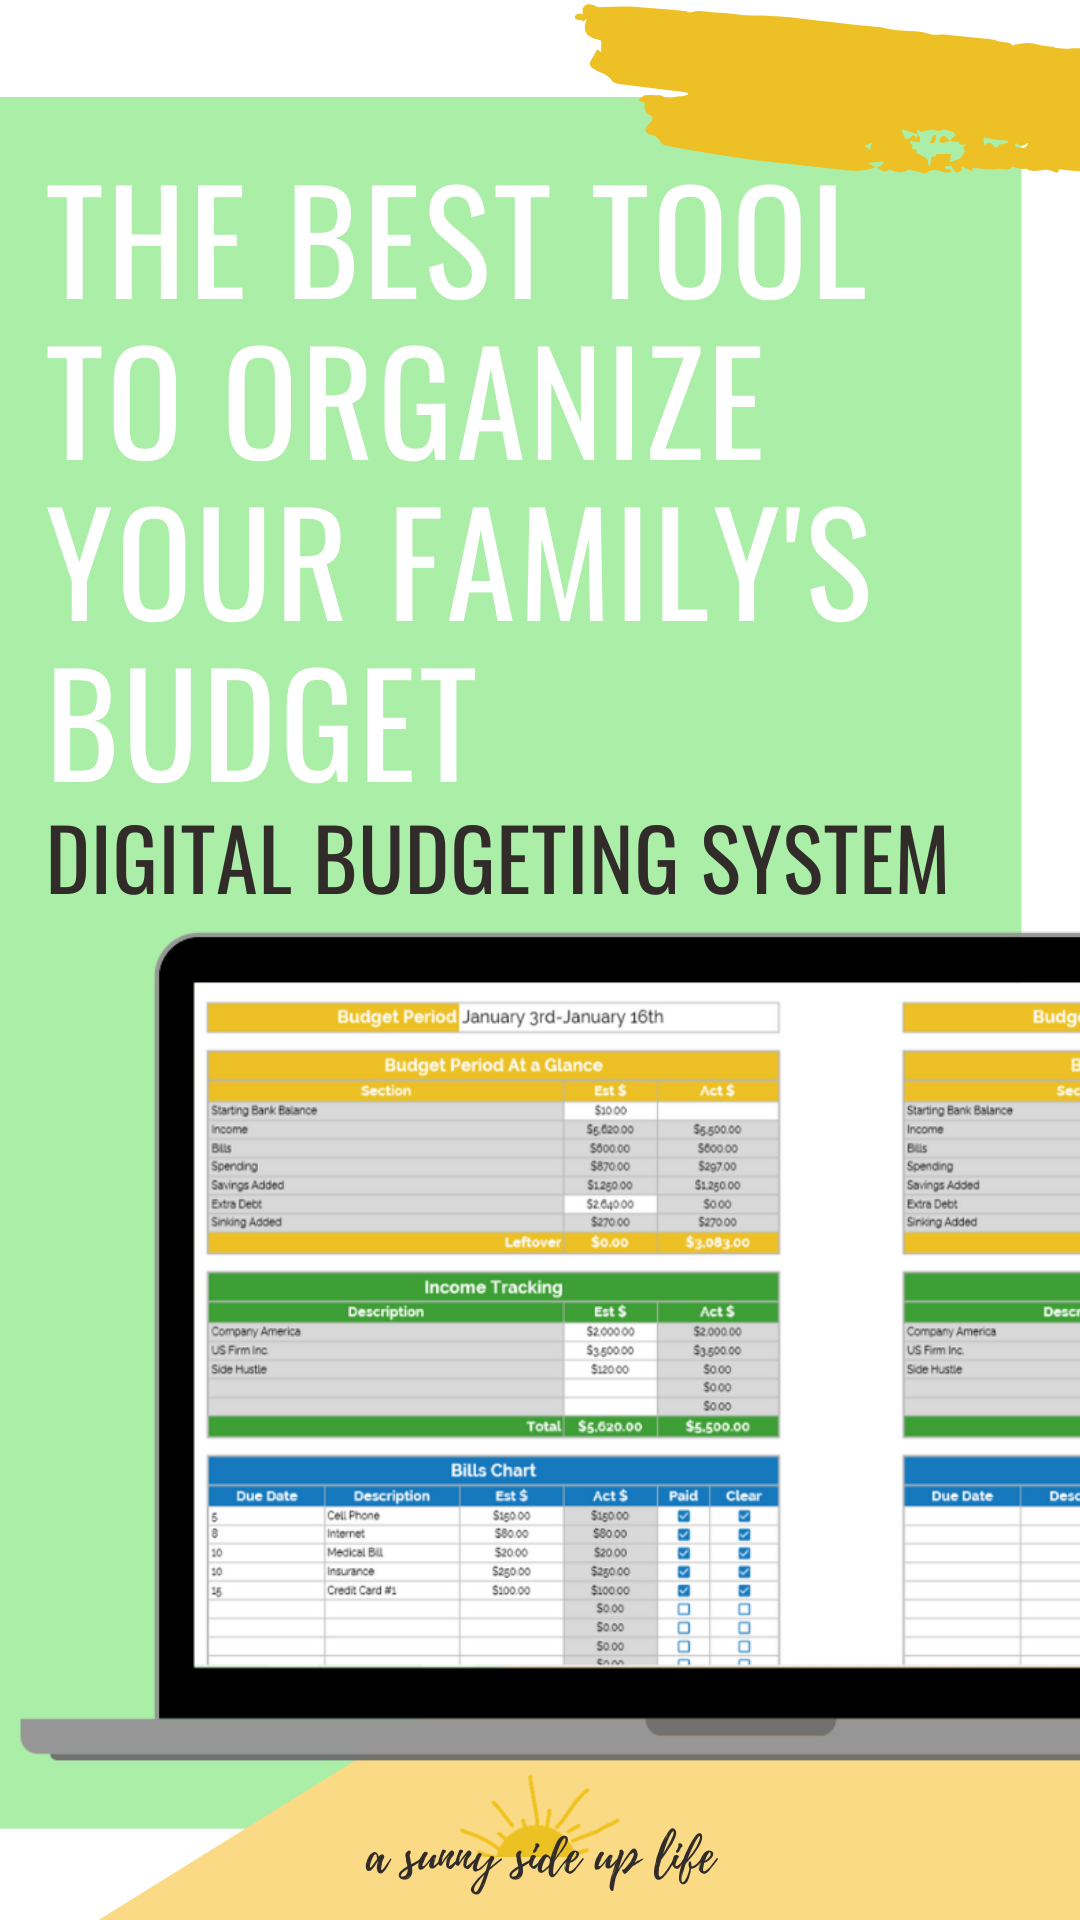 the best tool to organize your family's budget